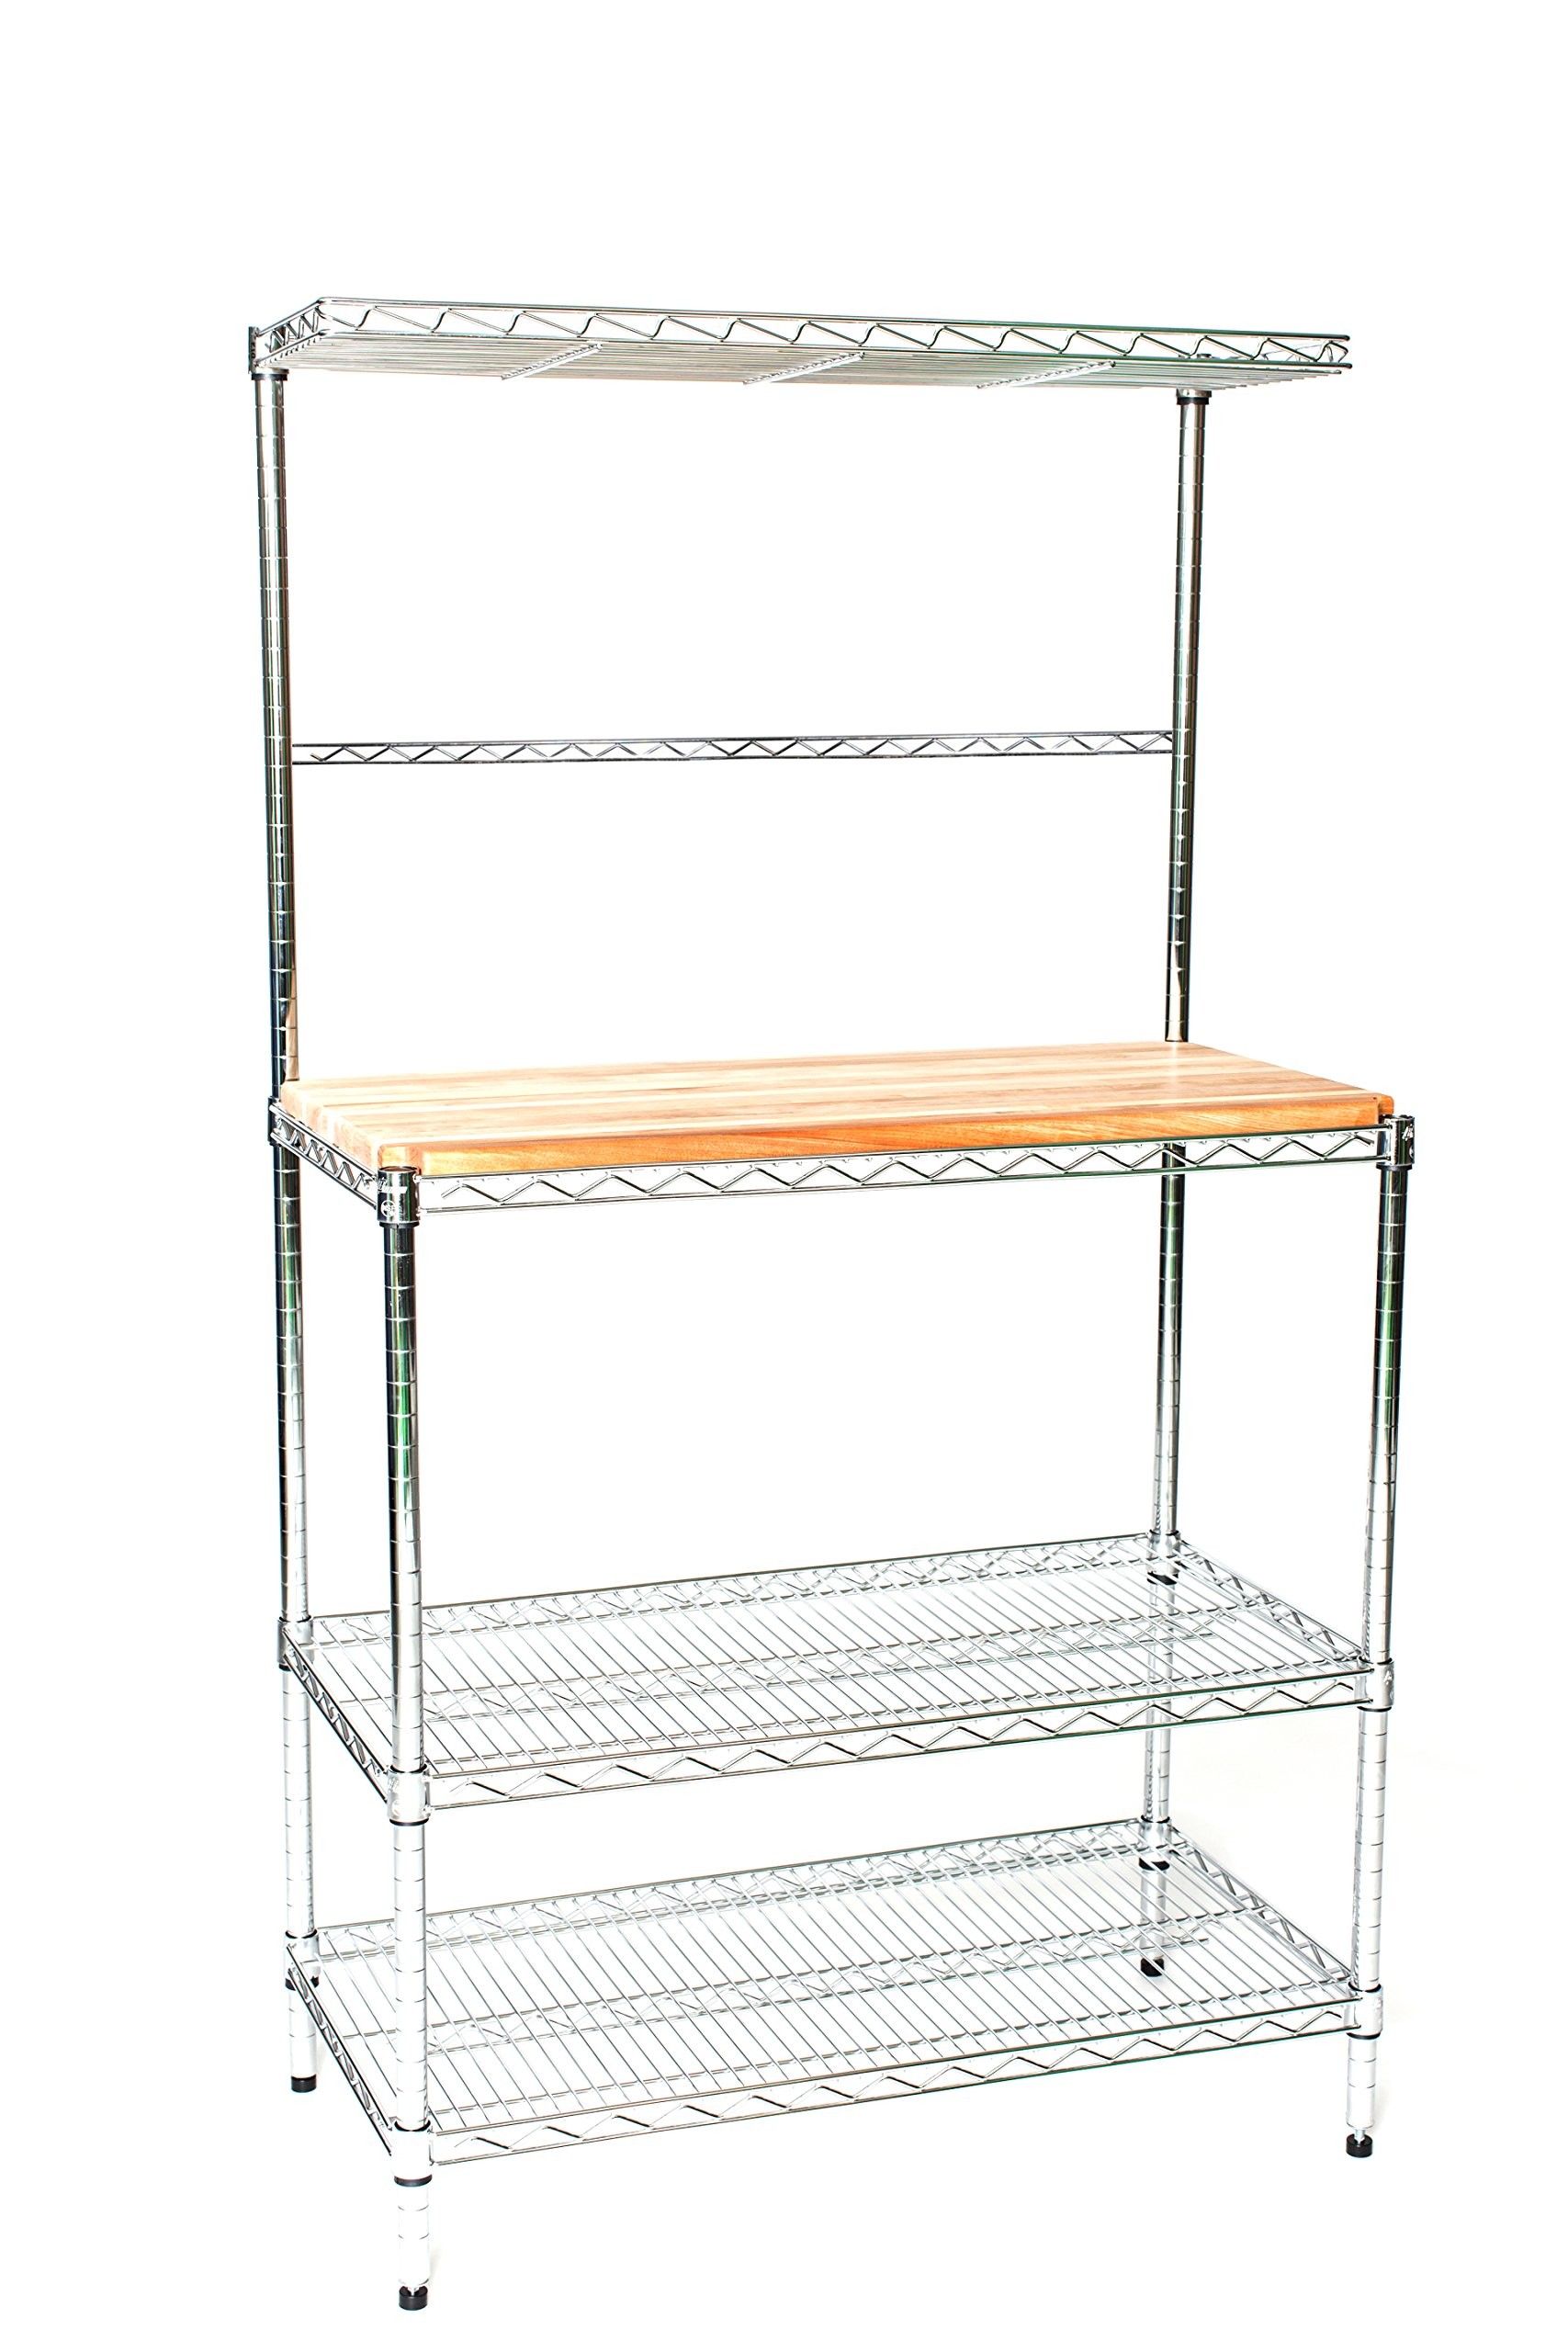 Omega 21'' Deep x 36'' Wide x 63'' High Deluxe Chrome Bakers Rack with Top Shelf & Butcher Block